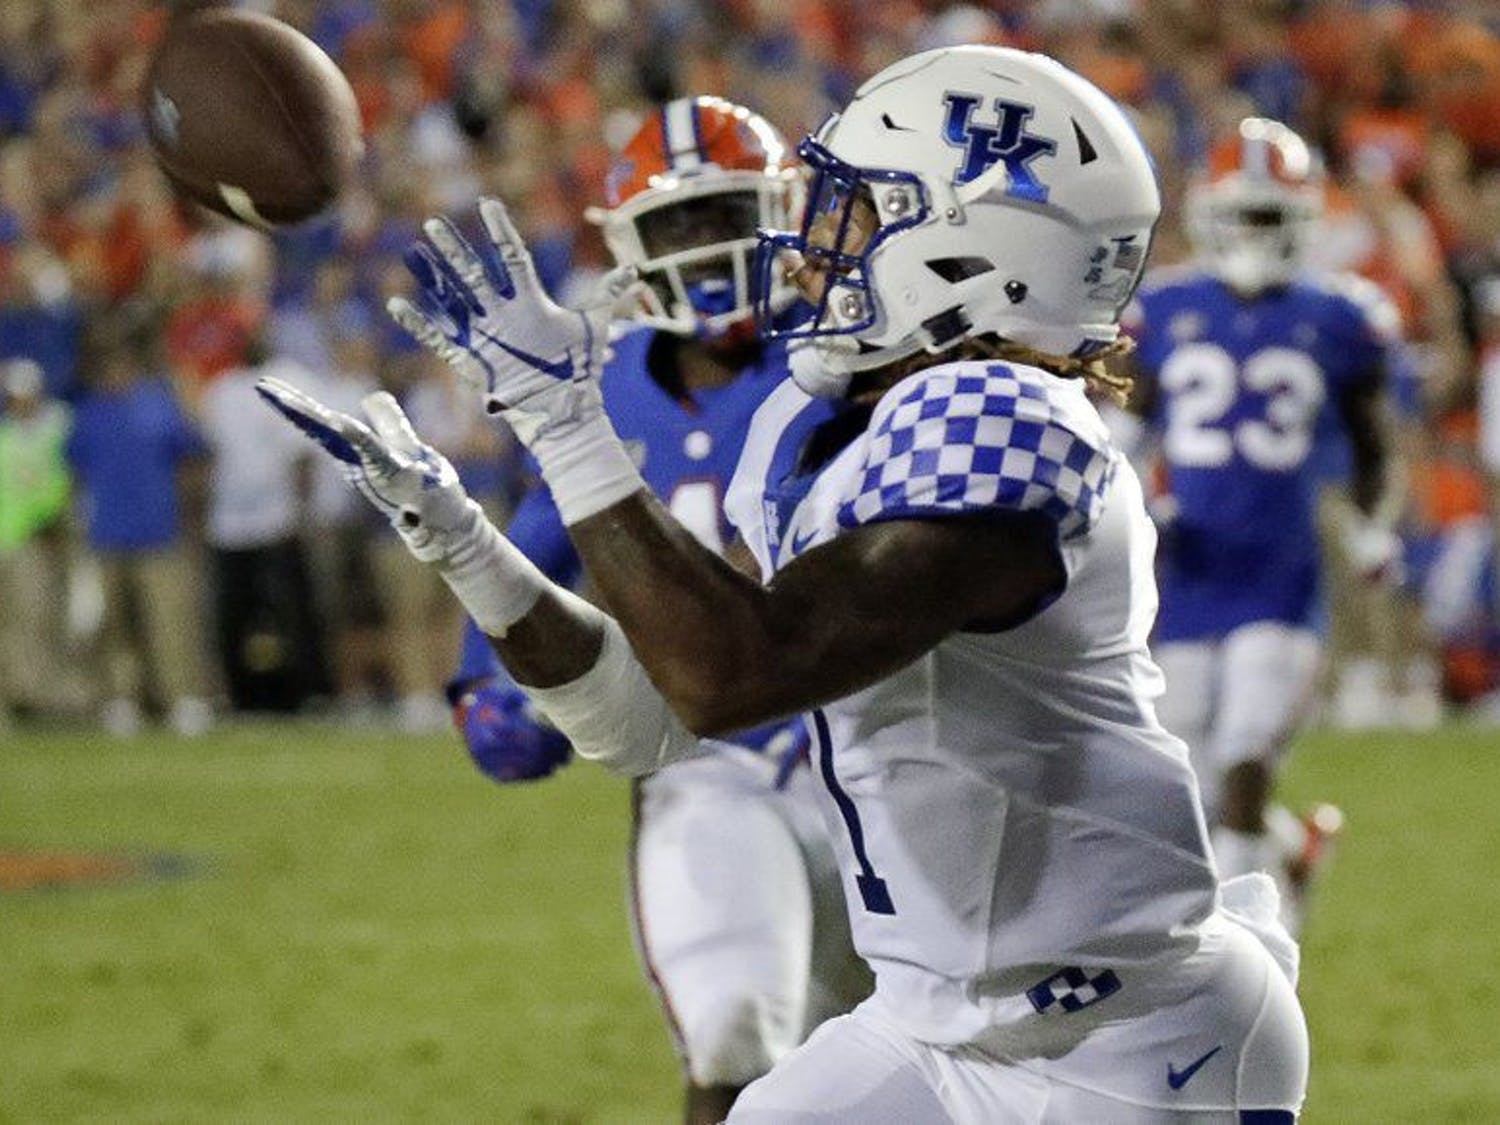 Lynn Bowden caught a 54-yard touchdown from quarterback Terry Wilson late in the third quarter. The Wildcats took a 21-10 advantage over UF, surging to a 27-16 victory in The Swamp.